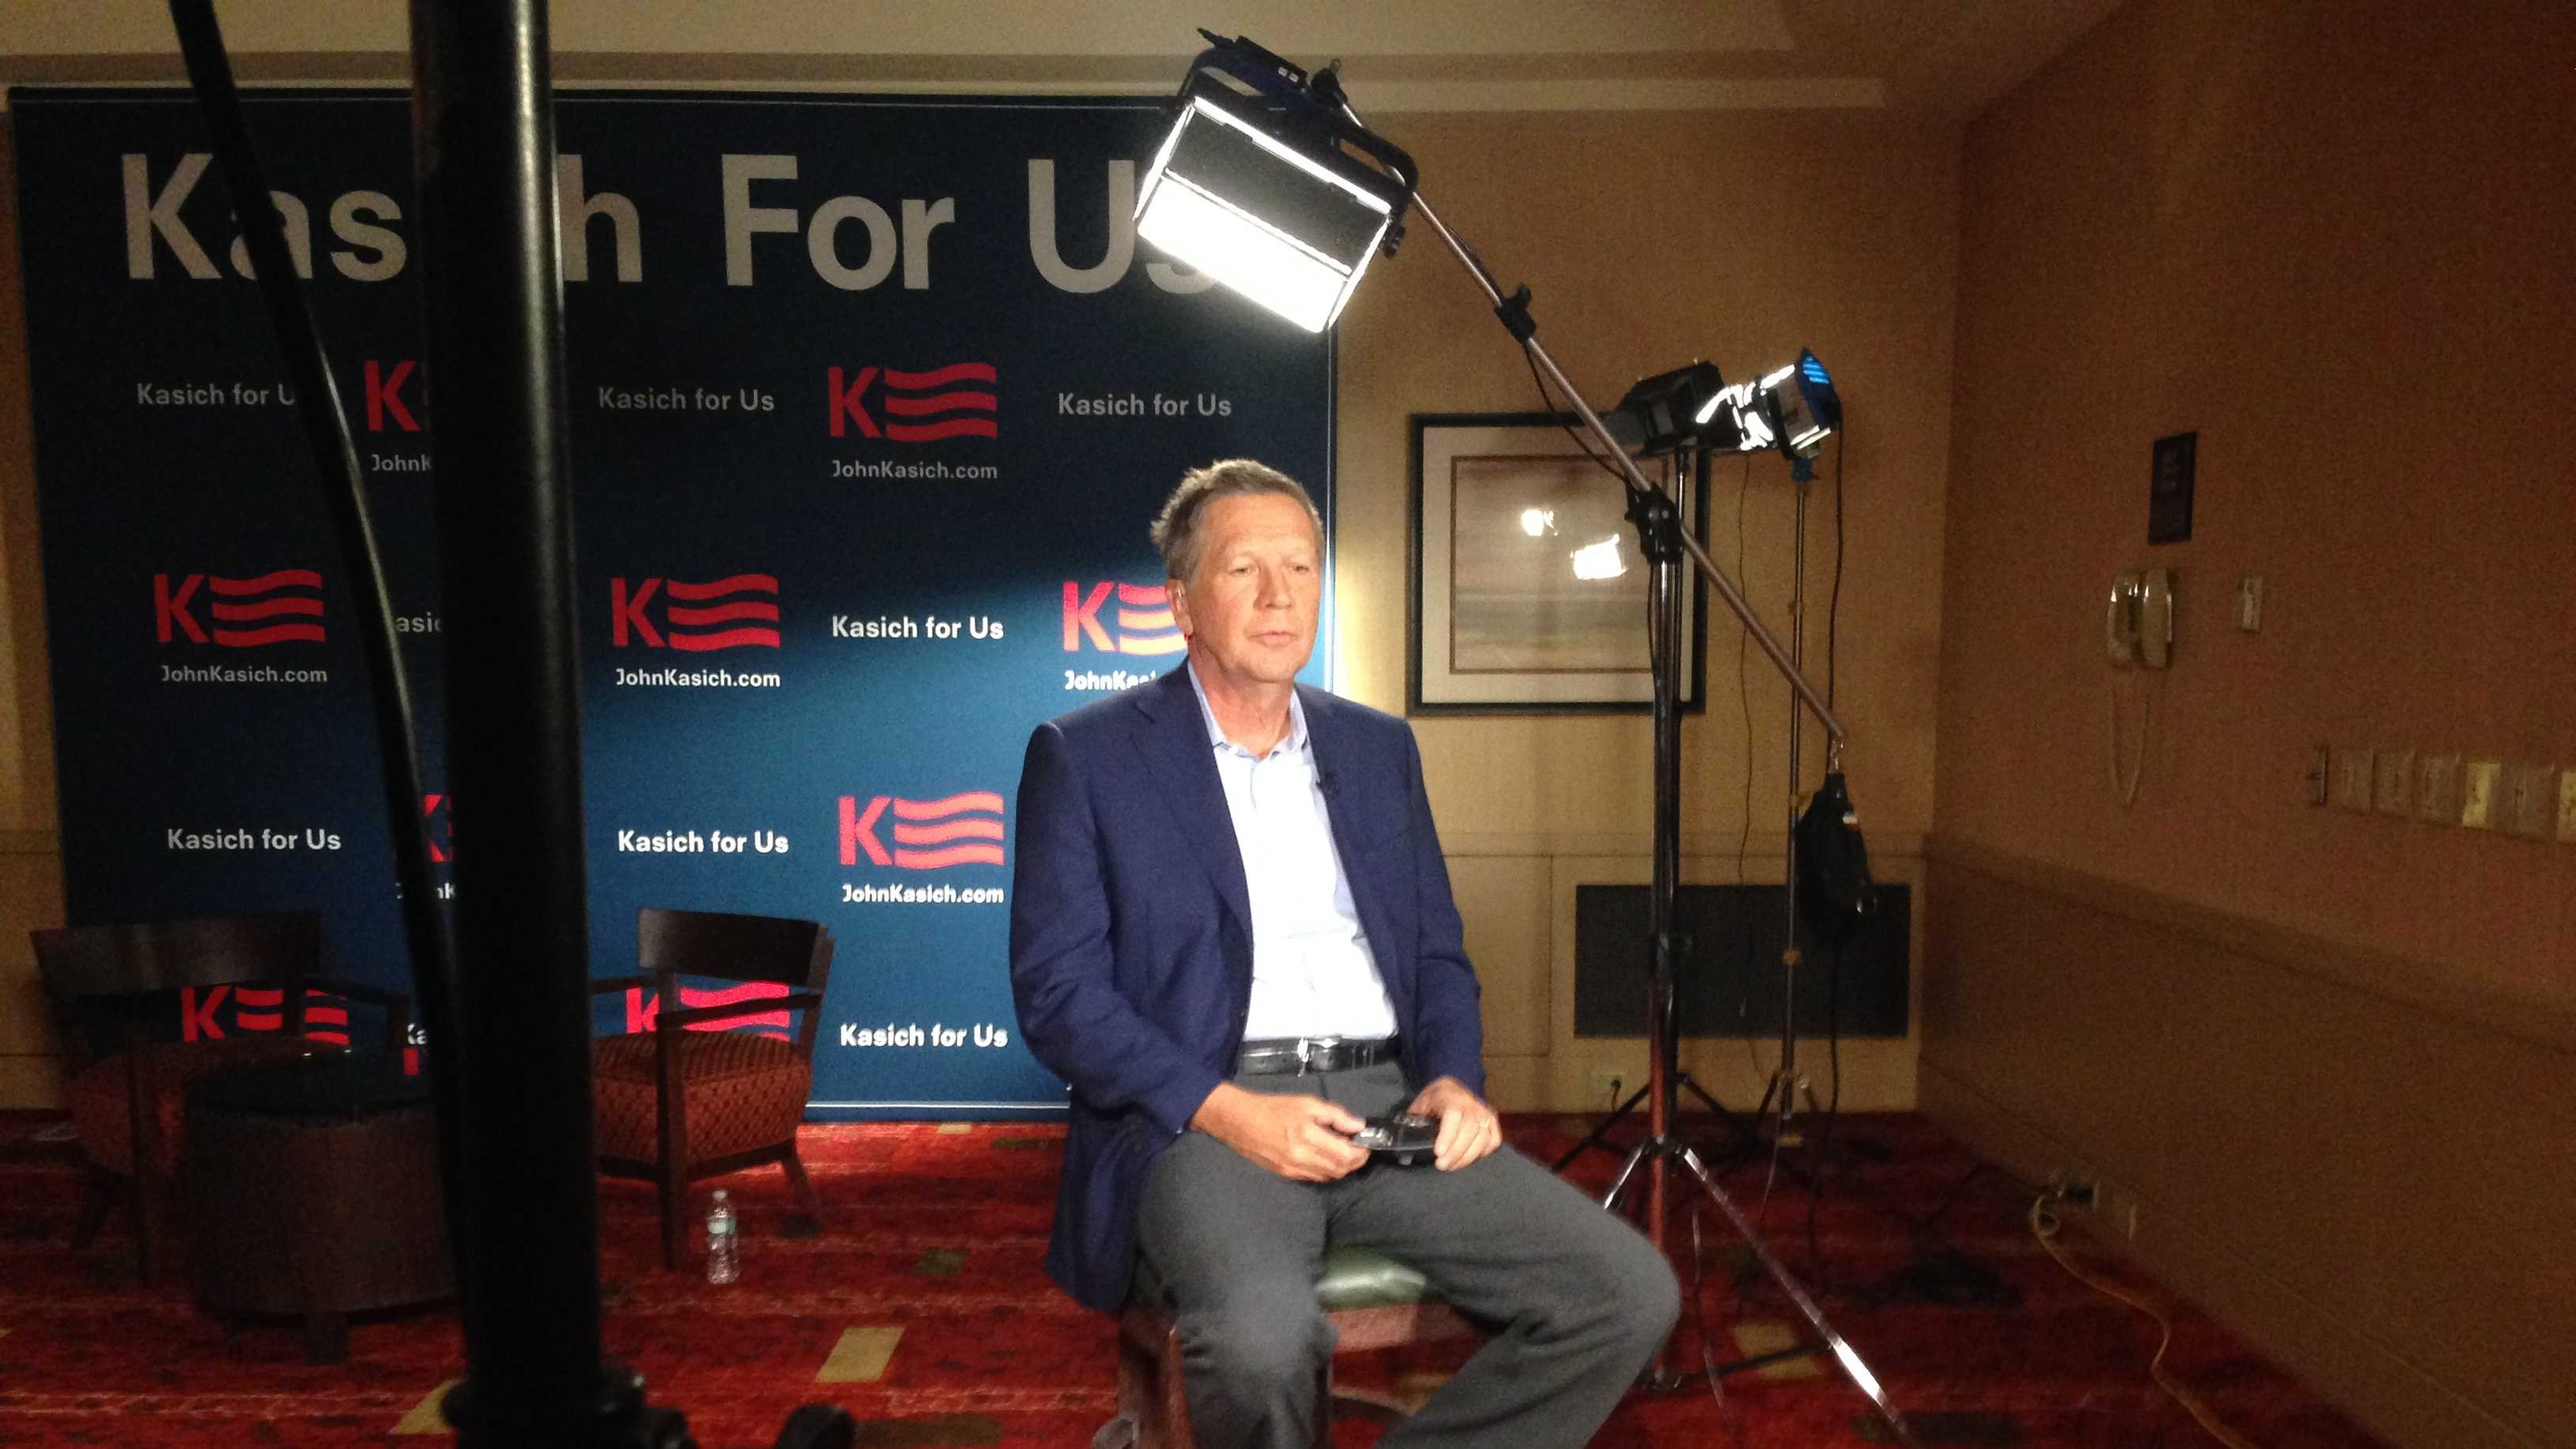 Ohio Gov. John Kasich conducts a satellite interview before heading downstairs to a Vermont GOP event at the Burlington Hilton Friday evening.